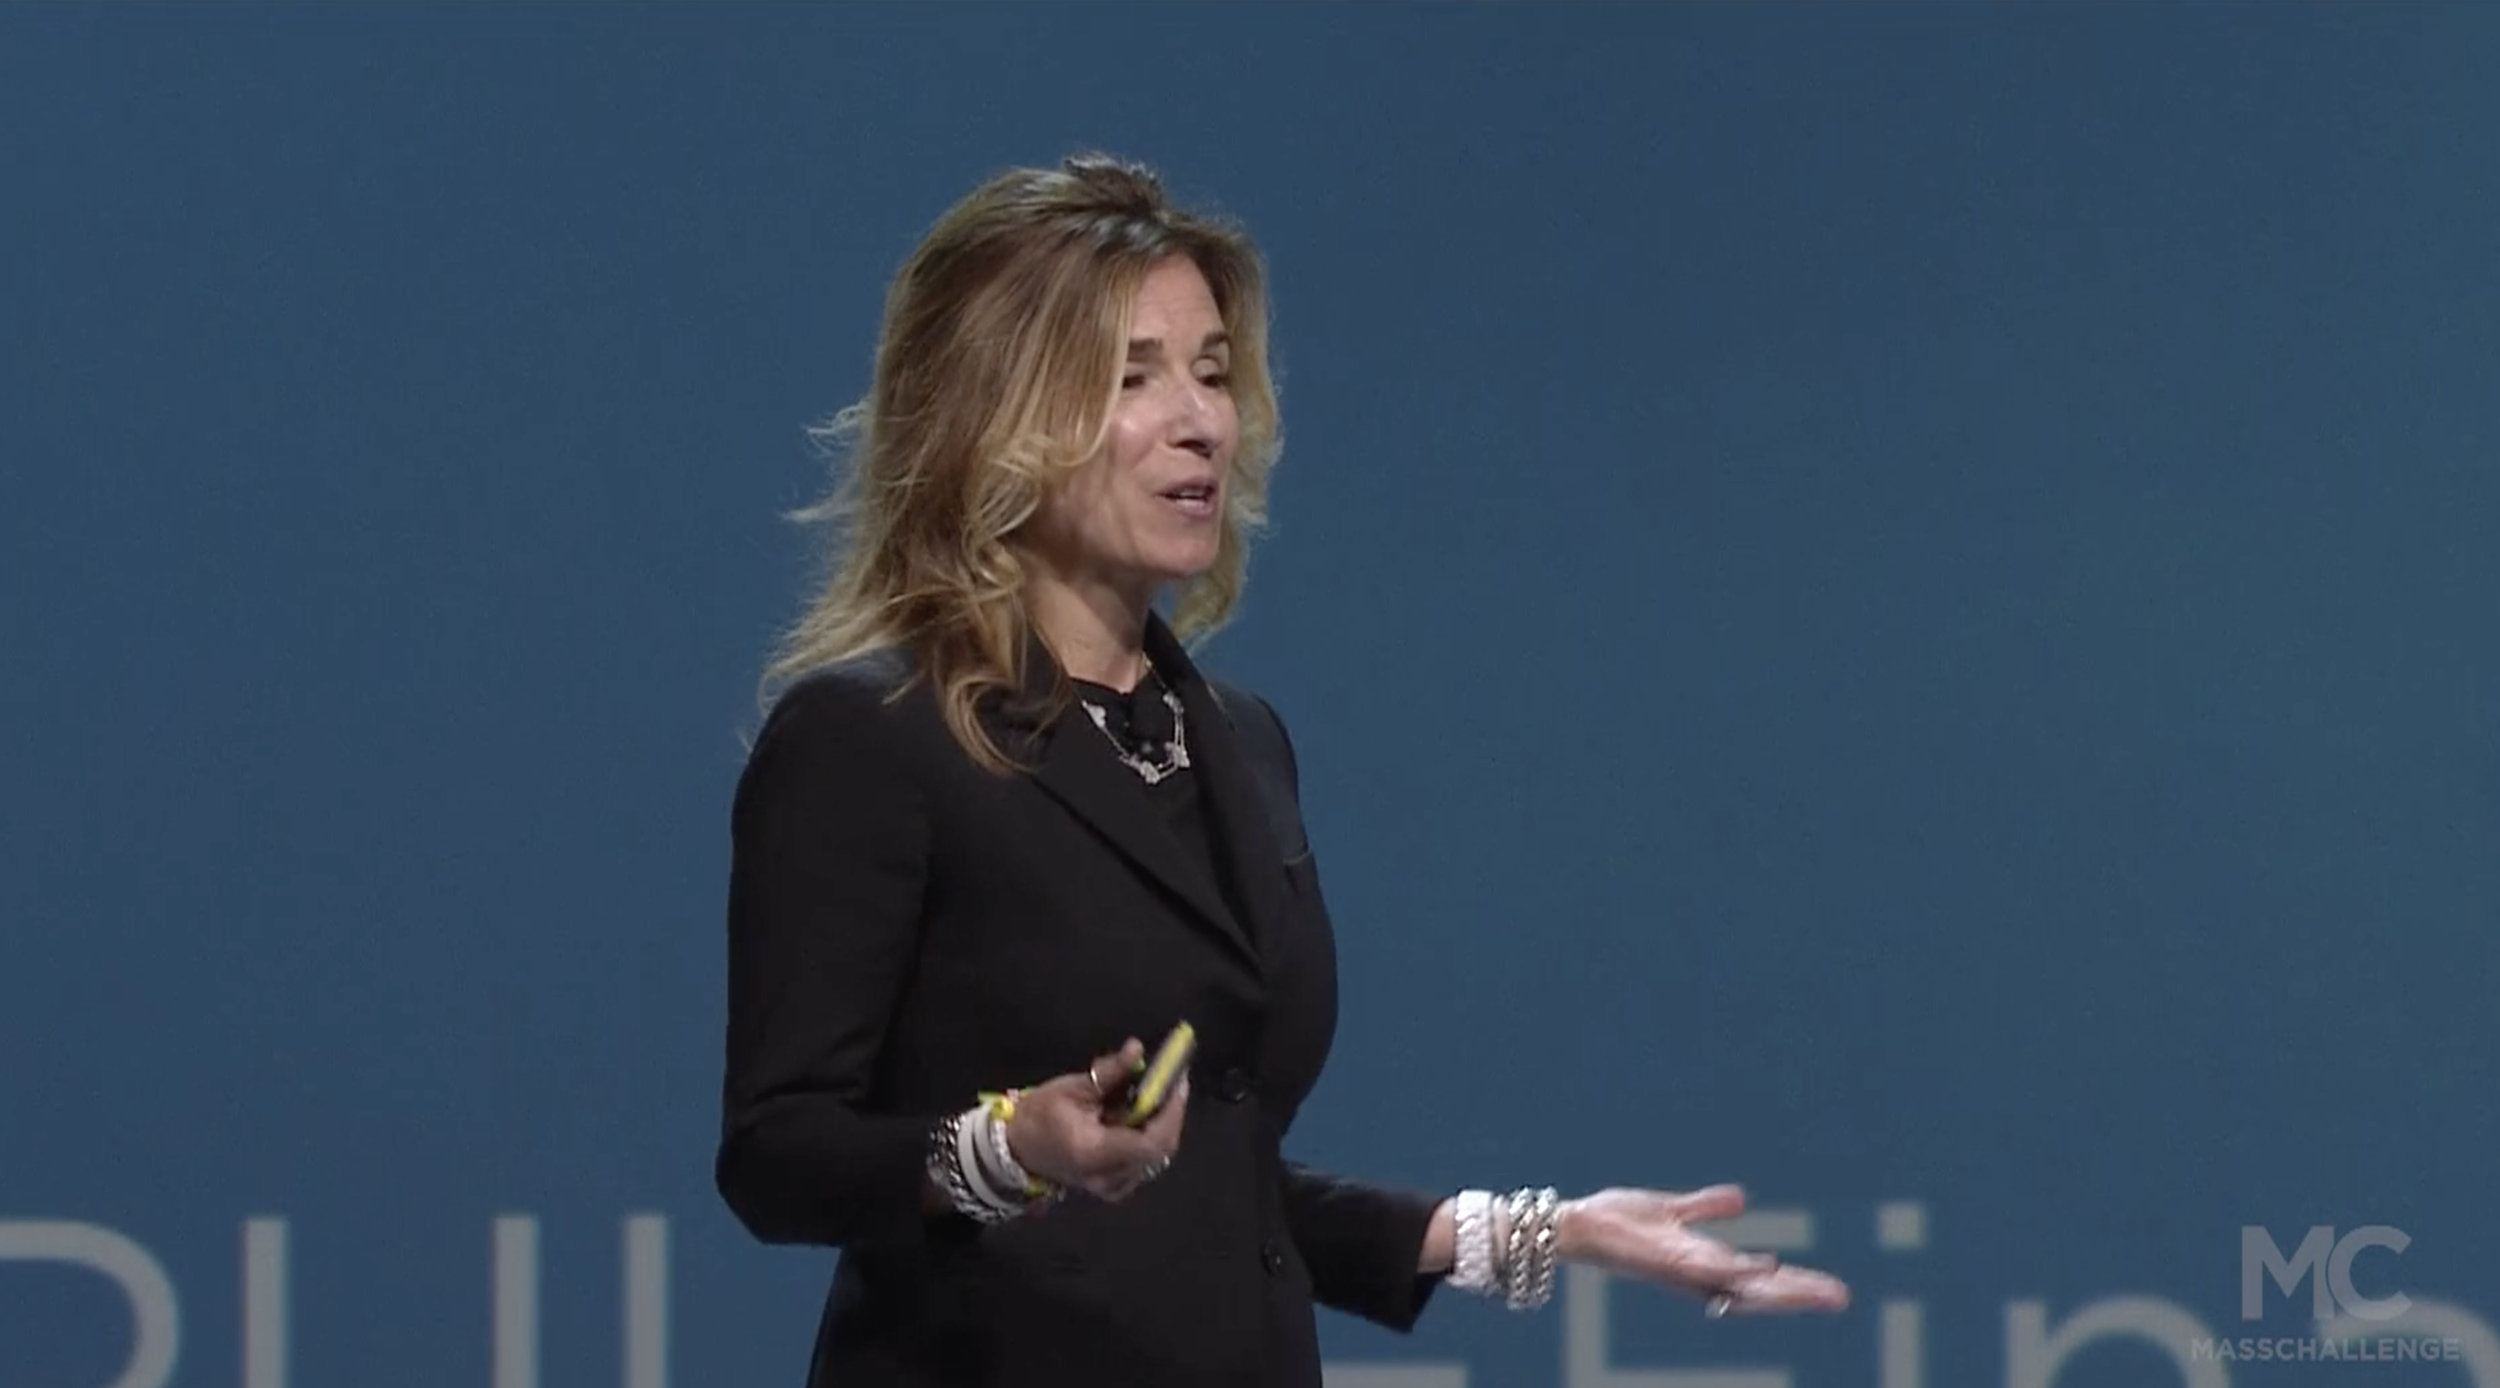 Watch ARCHANGELS' Alexandra Drane deliver the Keynote and talk about ARCHANGELS at the PULSE@masschallenge Finale at the Boston Convention Center Grand Ballroom.